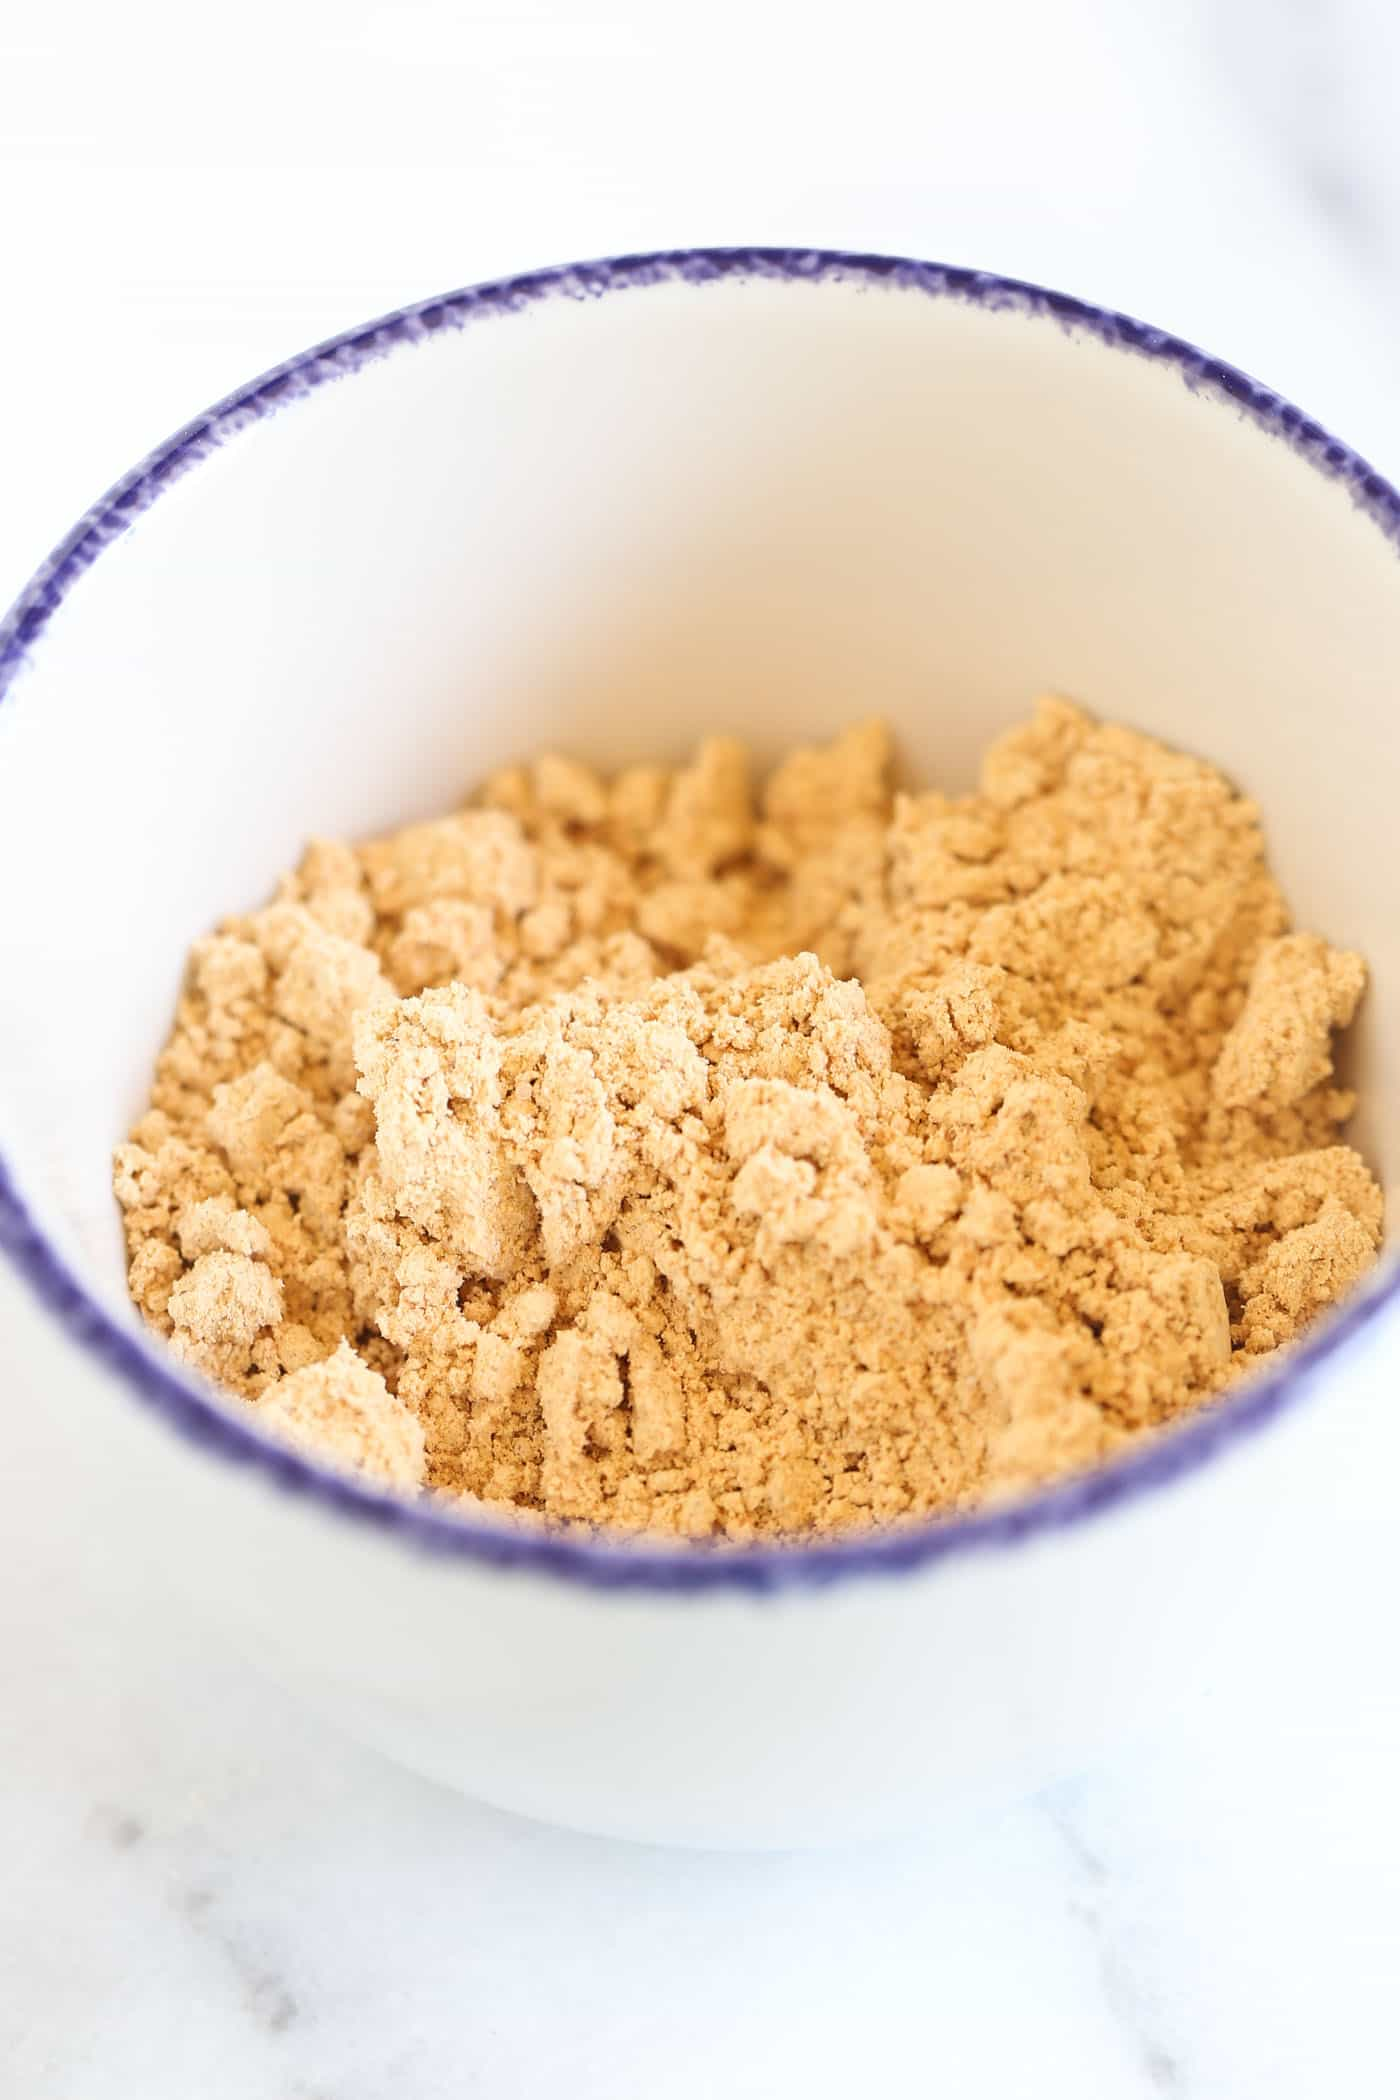 How to make a peanut butter drizzle using peanut butter powder!